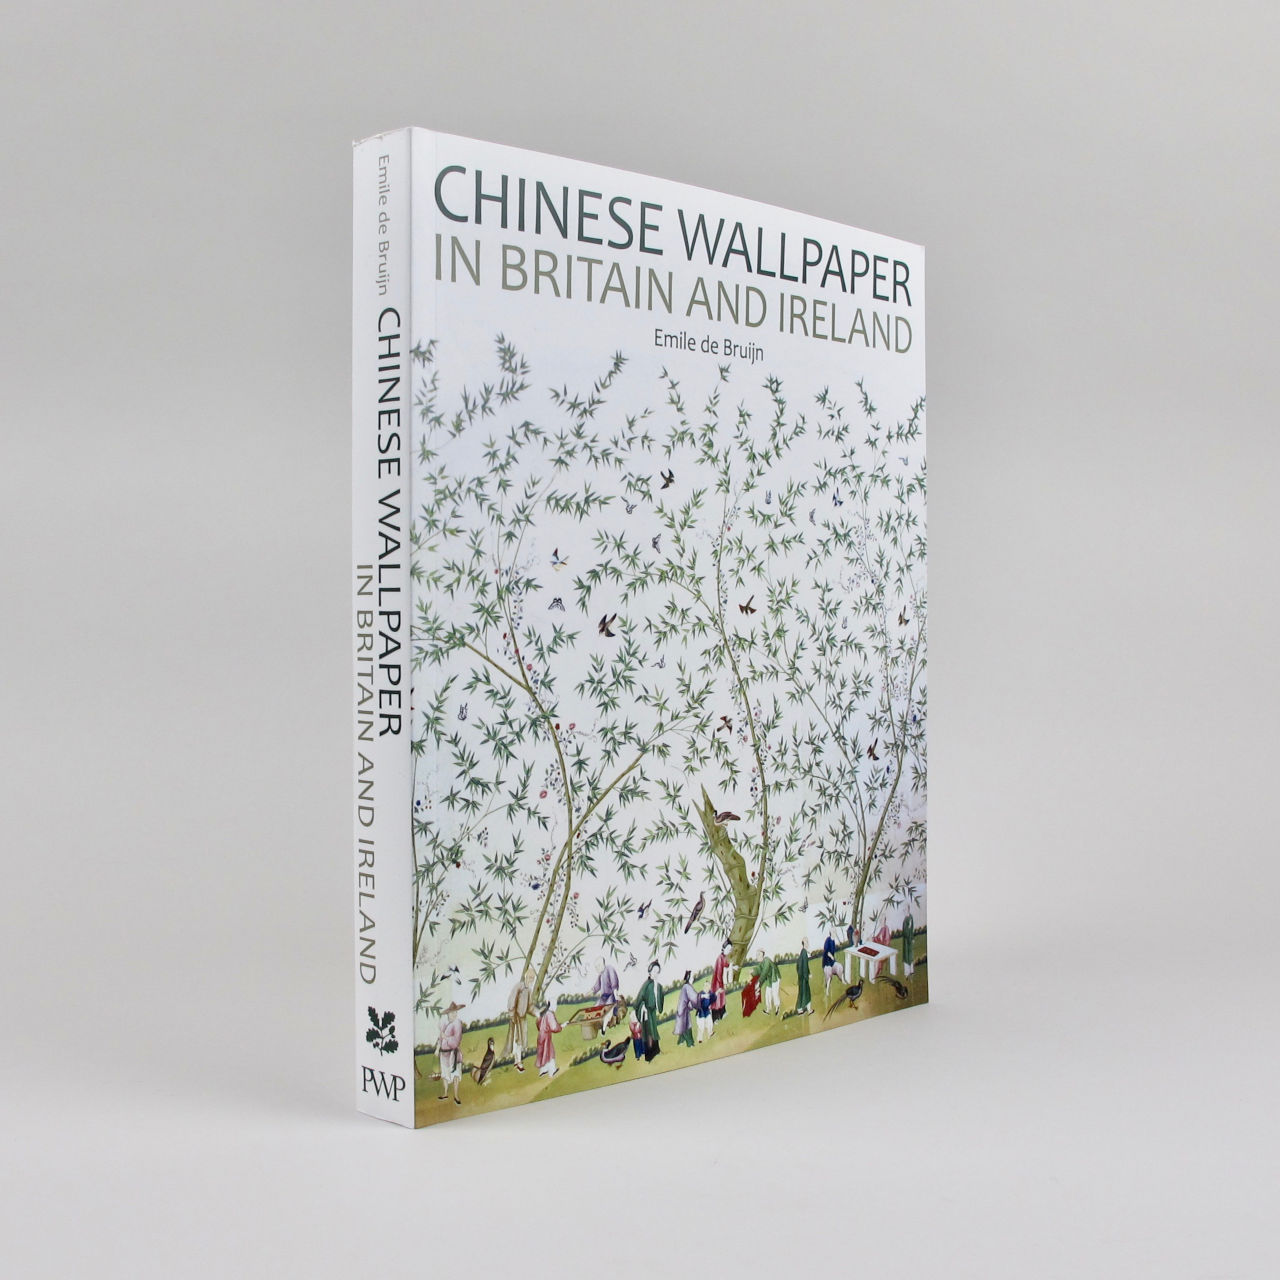 Chinese Wallpaper in Britain and Ireland - Emile de Bruijn